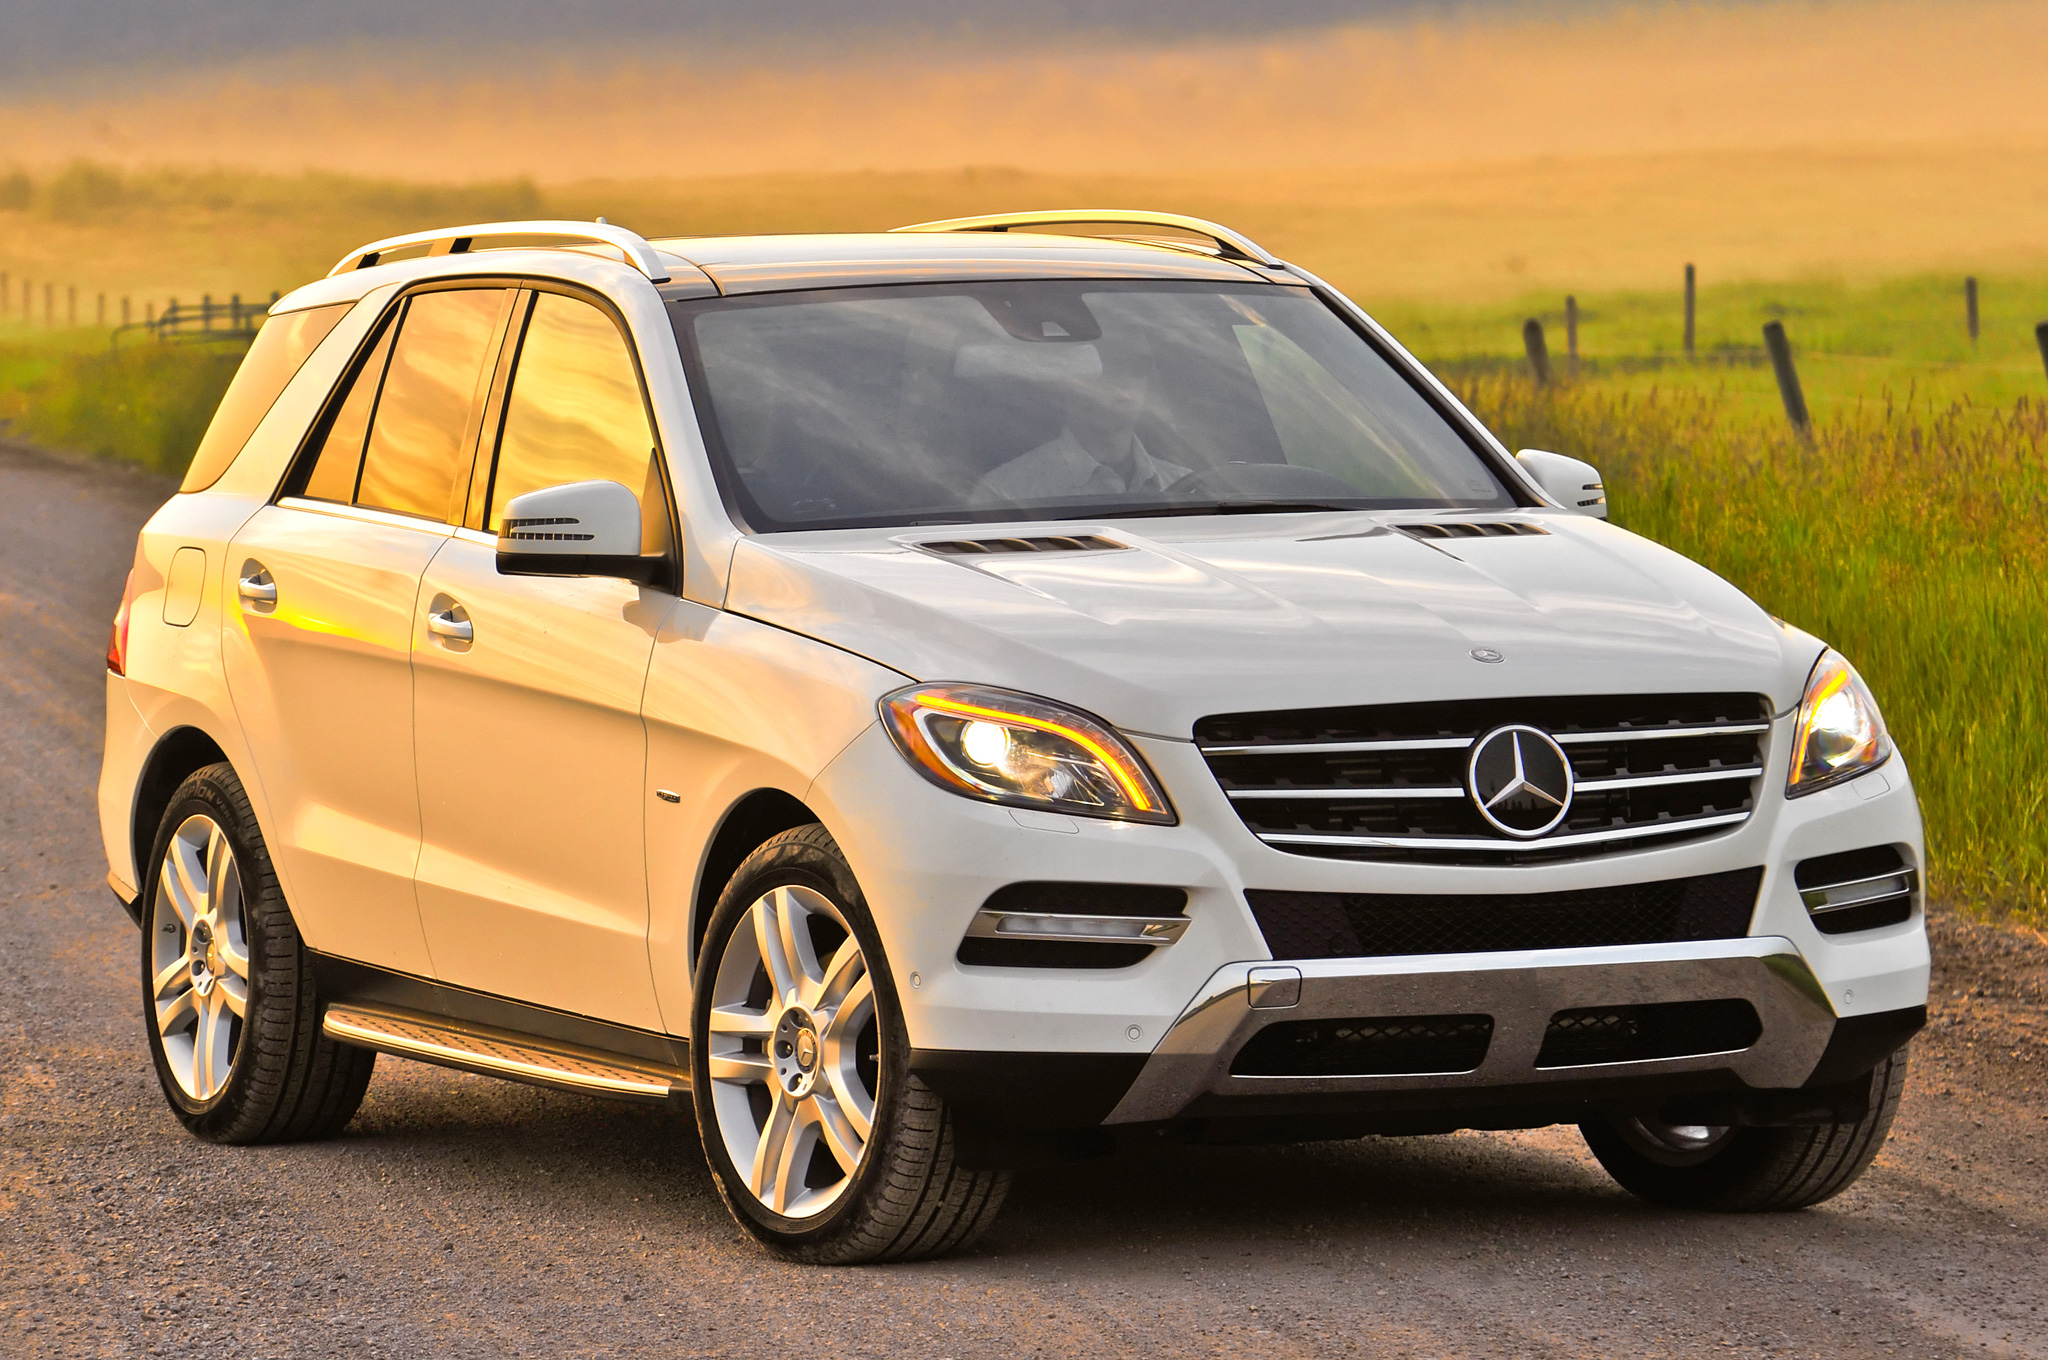 for sale m benz near stock class neck great ny ml htm c used mercedes l